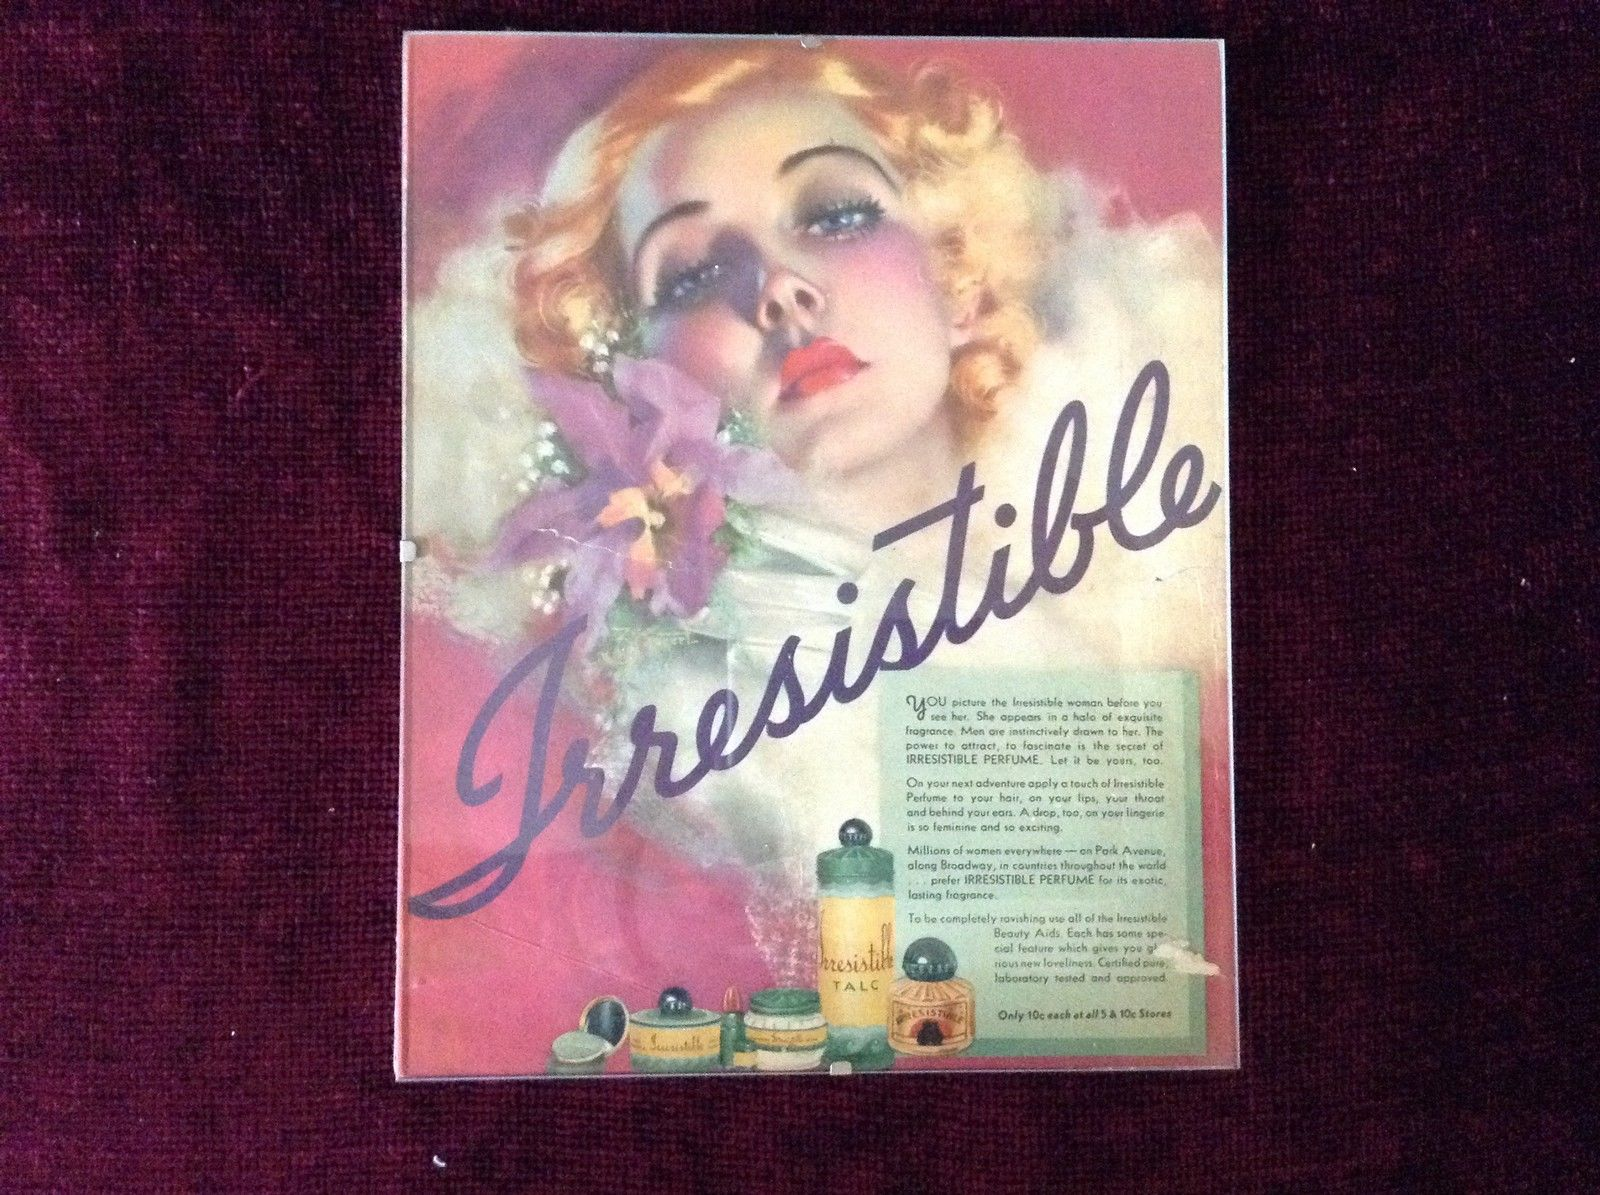 Colorful Vintage Irresistible Perfume Poster 8 Inches by 10 Inches